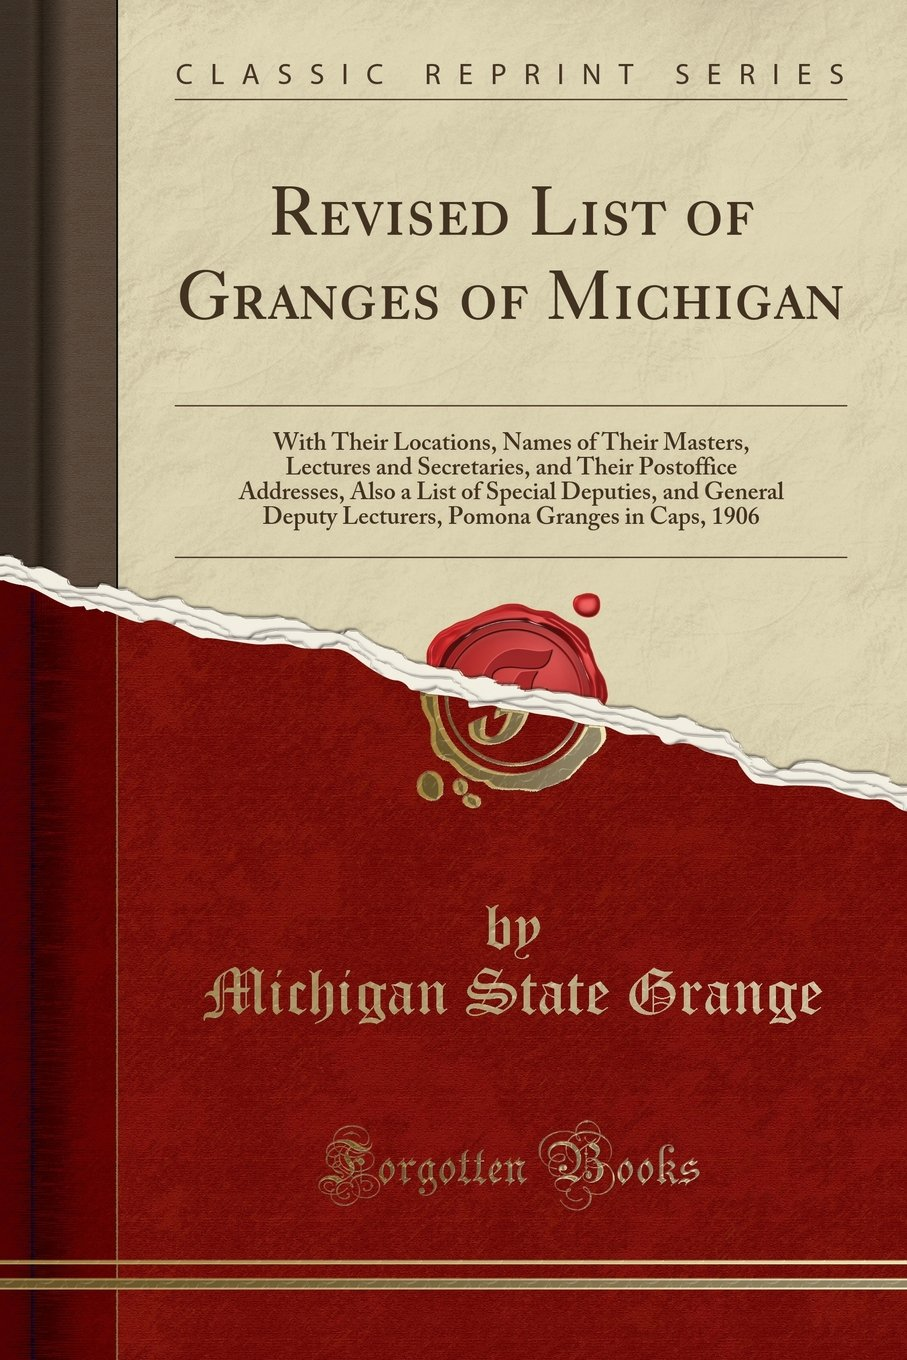 Read Online Revised List of Granges of Michigan: With Their Locations, Names of Their Masters, Lectures and Secretaries, and Their Postoffice Addresses, Also a ... Granges in Caps, 1906 (Classic Reprint) ebook